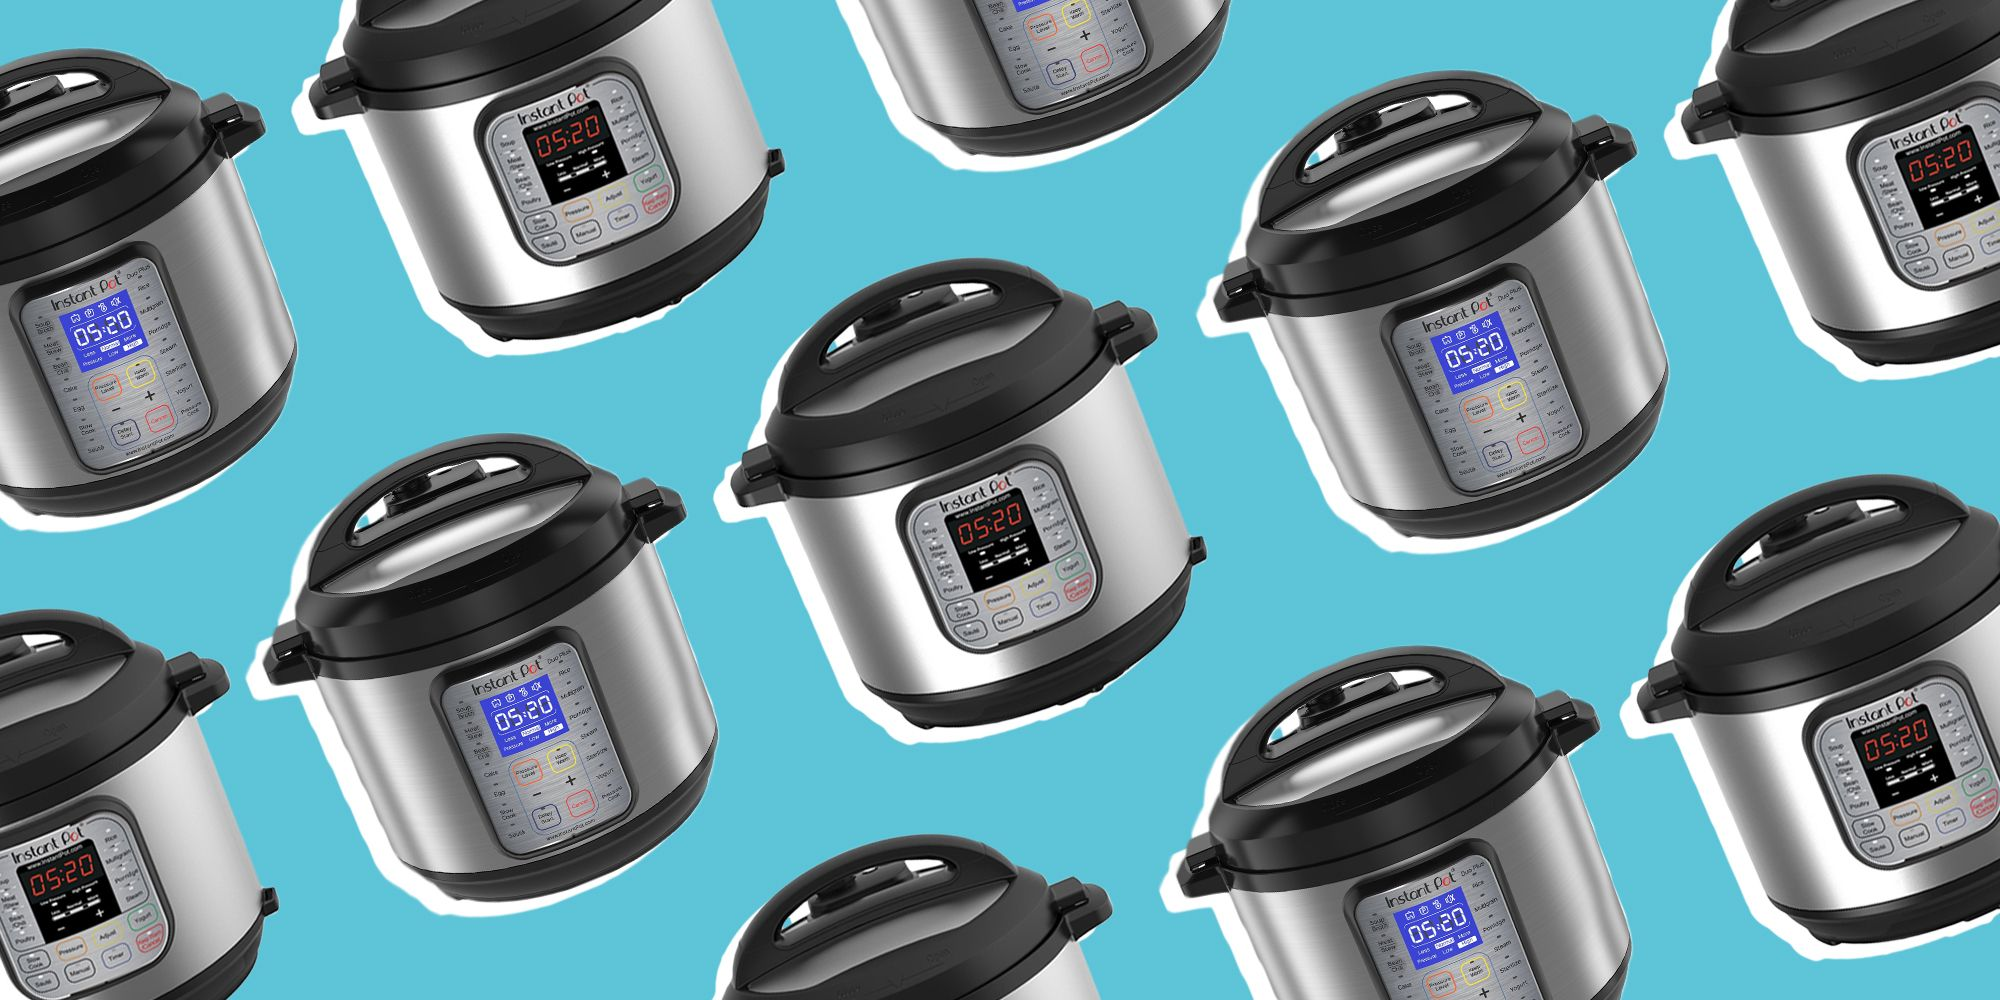 5 Best Instant Pots for 2018 - Top-Rated Instant Pot Reviews